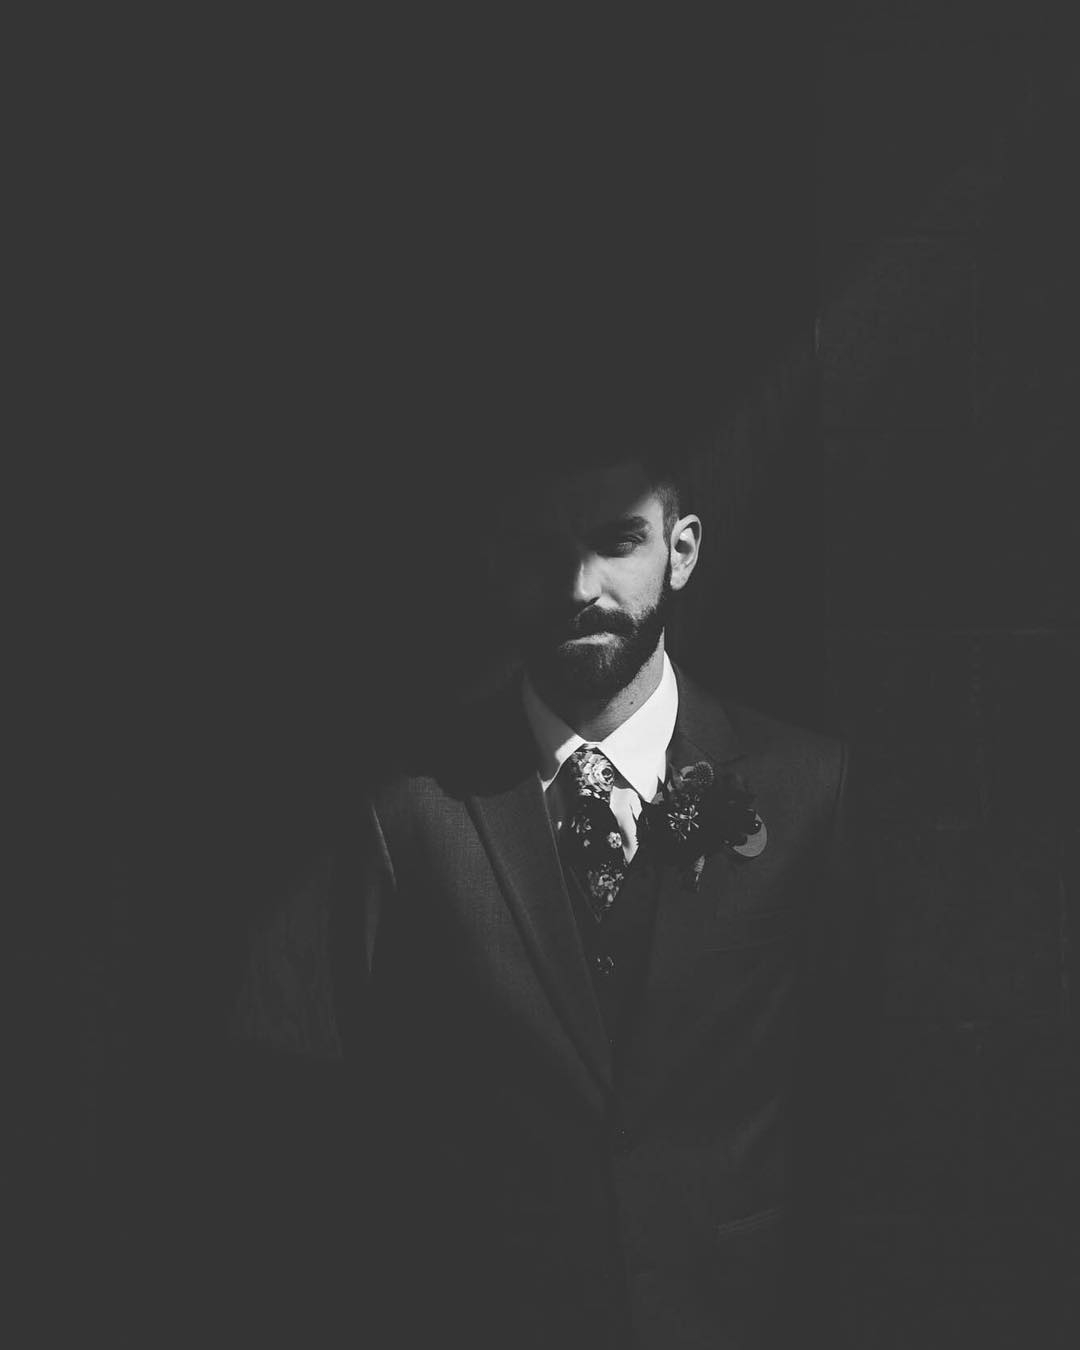 A monochrome portrait of a groom standing beside a wall as half of his face is in shade